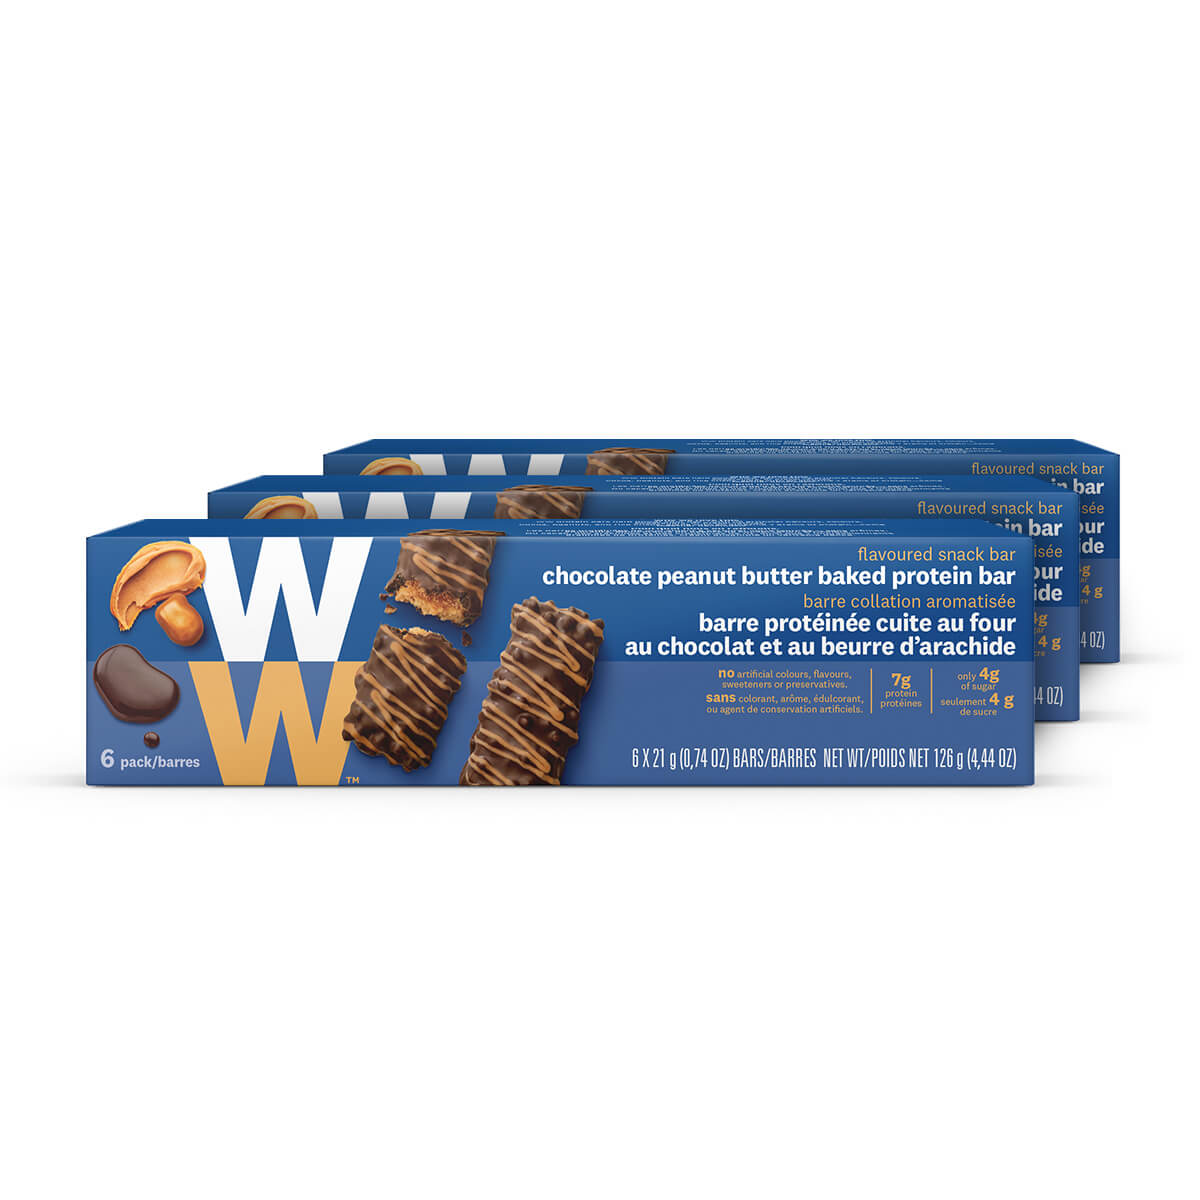 Chocolate Peanut Butter Baked Protein Bar (3 Pack)